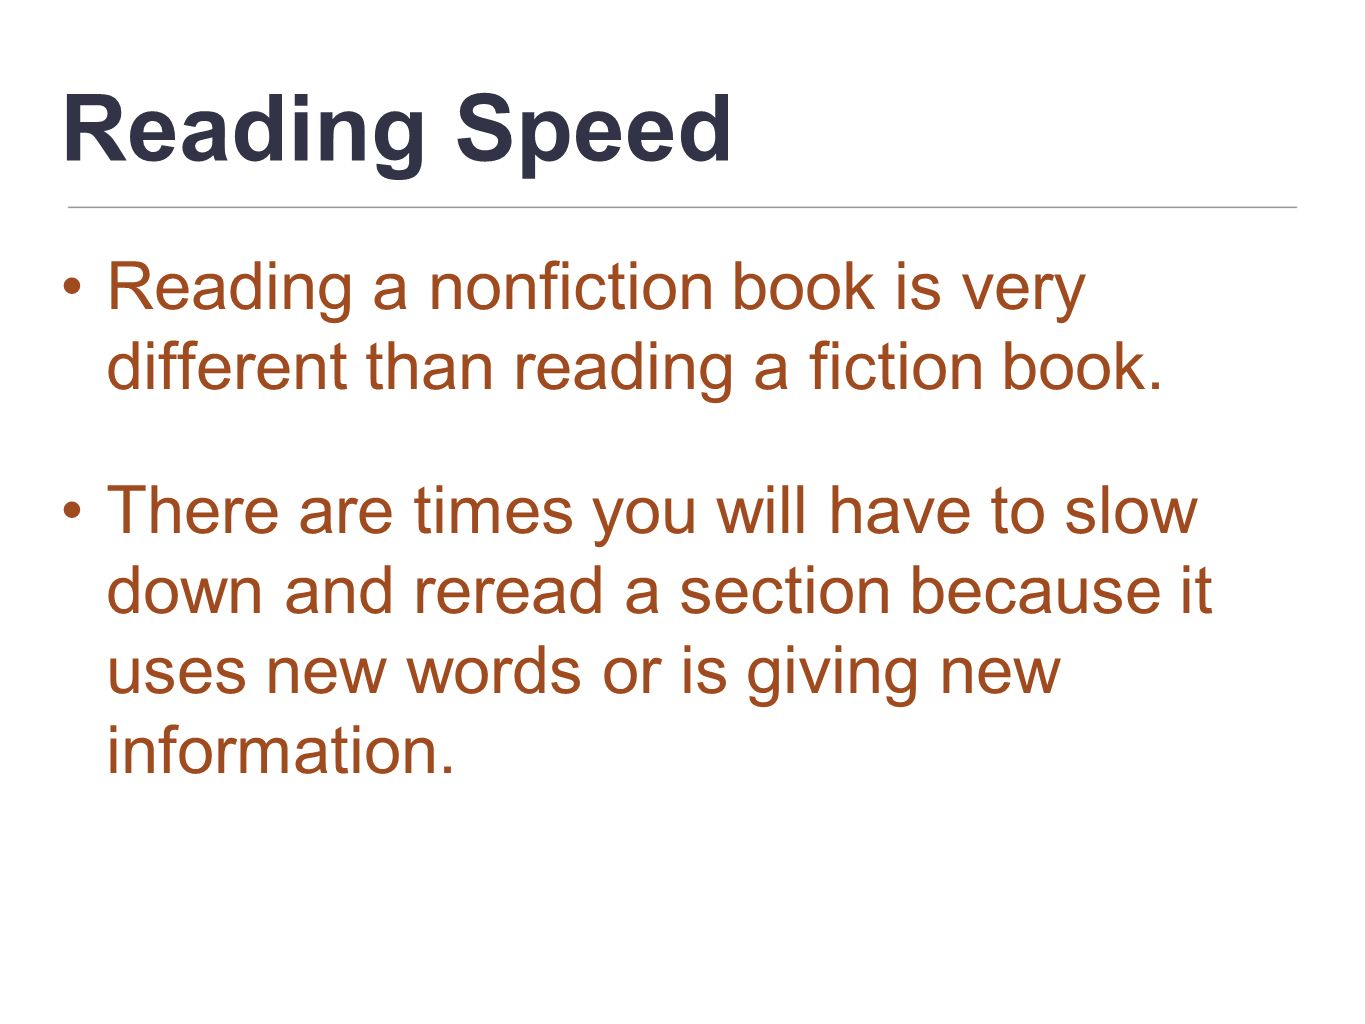 Reading Speed Reading a nonfiction book is very different than reading a fiction book.